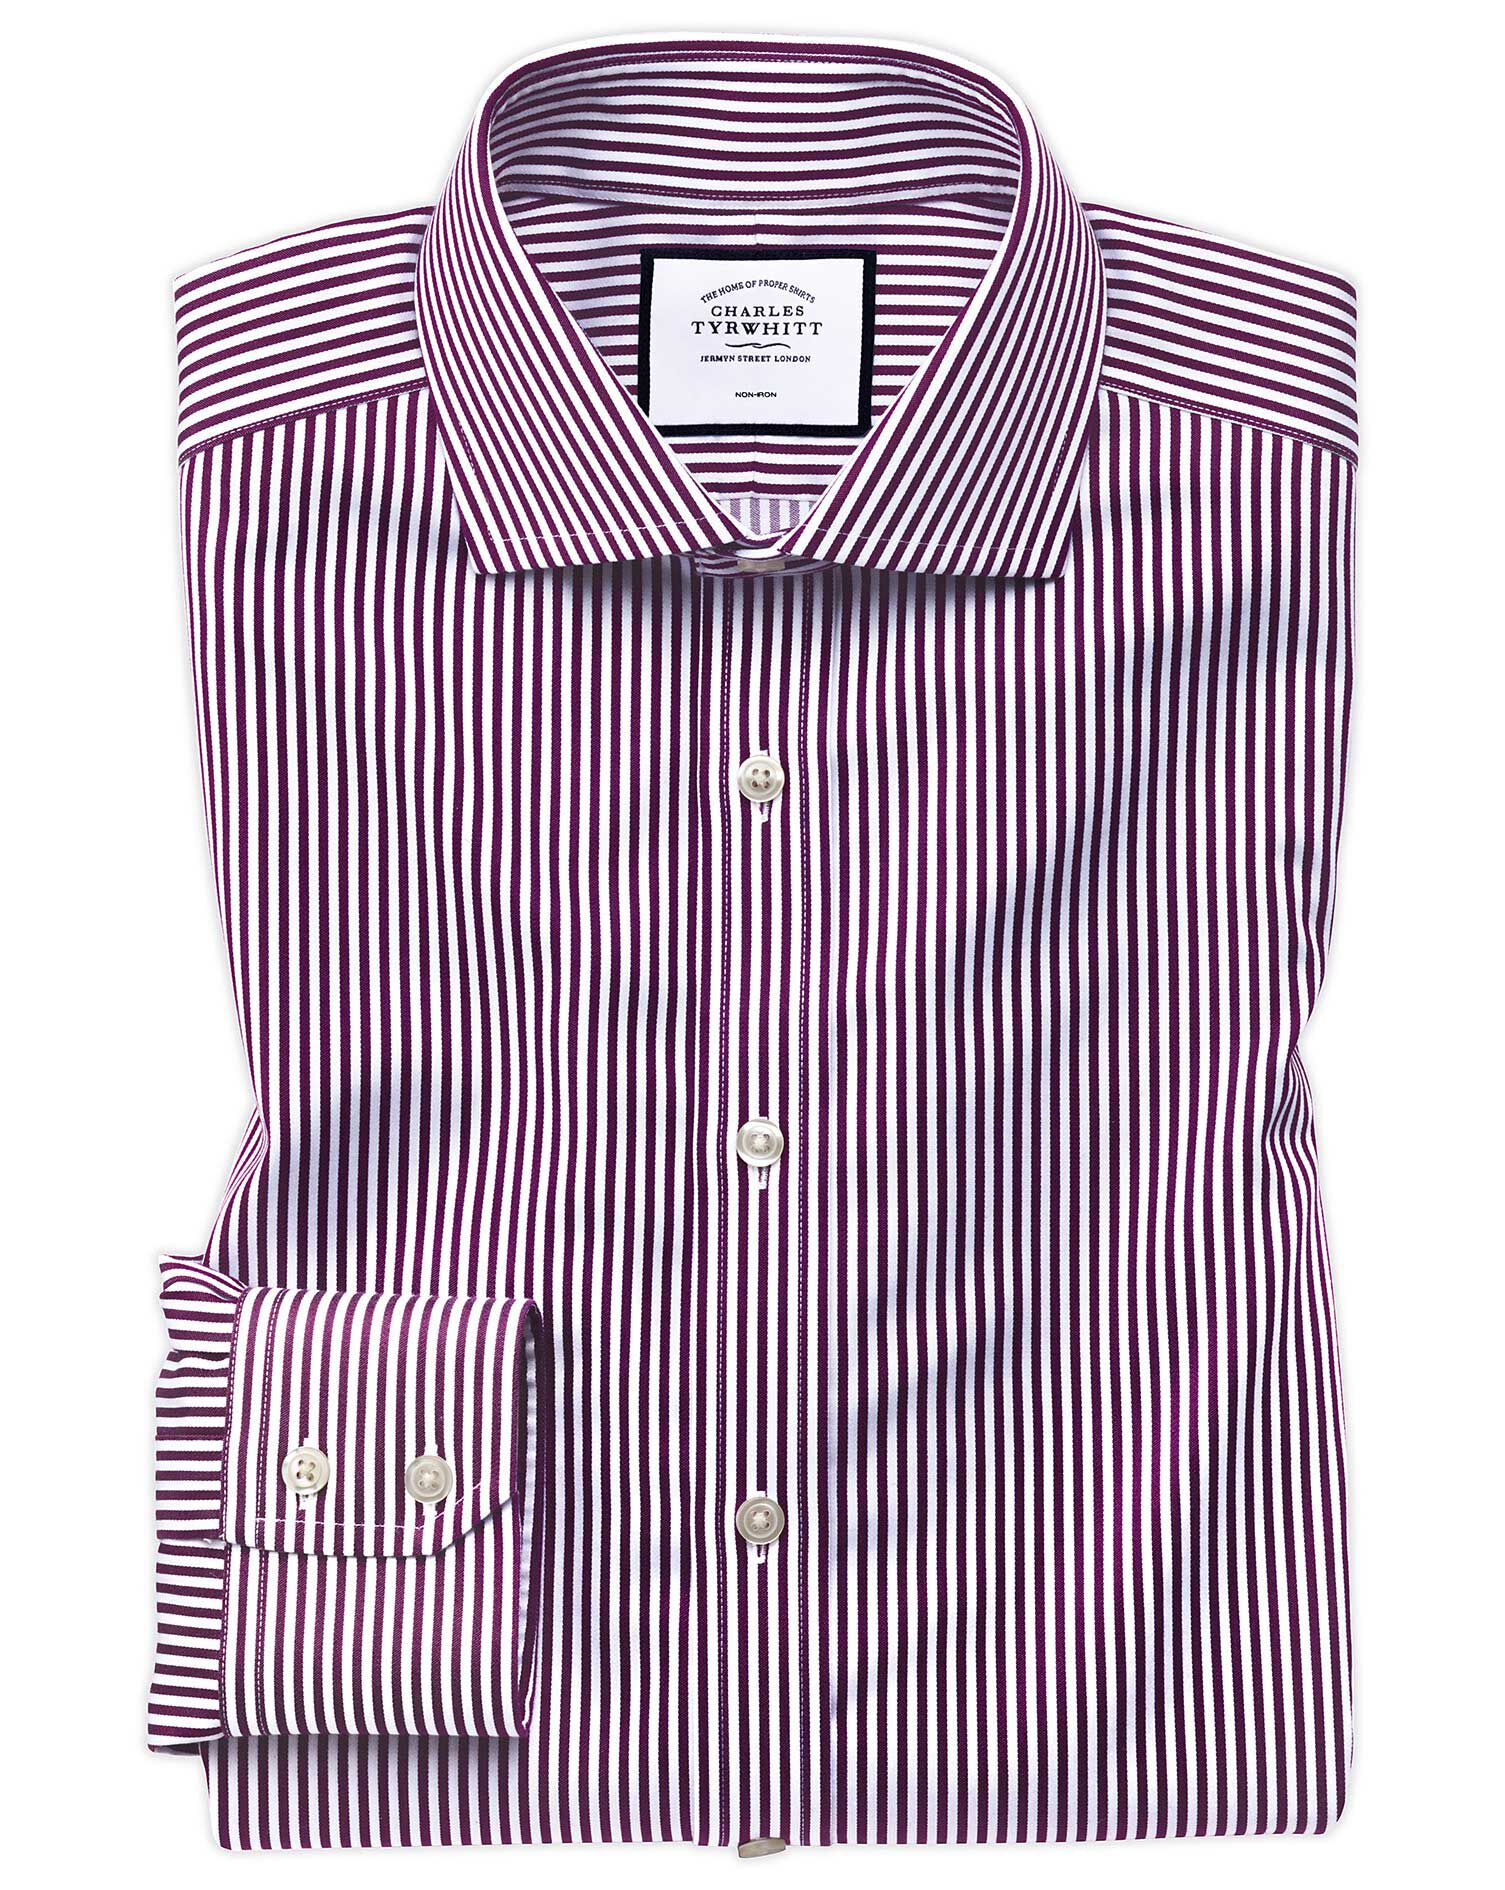 Extra Slim Fit Non-Iron Cutaway Collar Berry Twill Stripe Cotton Formal Shirt Single Cuff Size 16/36 by Charles Tyrwhitt from Charles Tyrwhitt